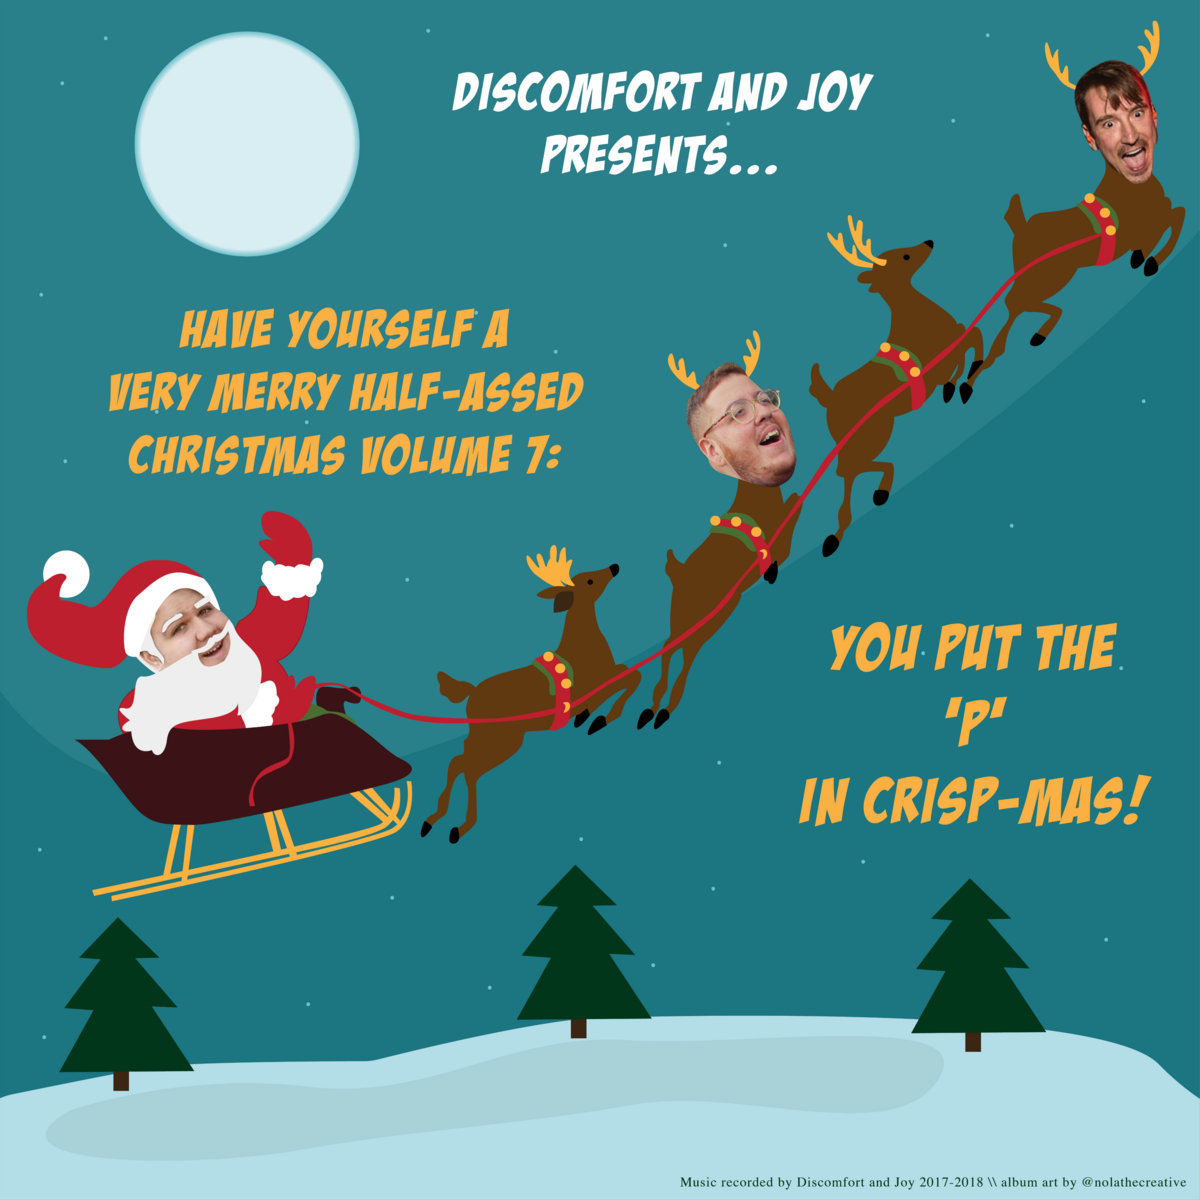 That Eagles Christmas Song (You Know The One) | Discomfort and Joy